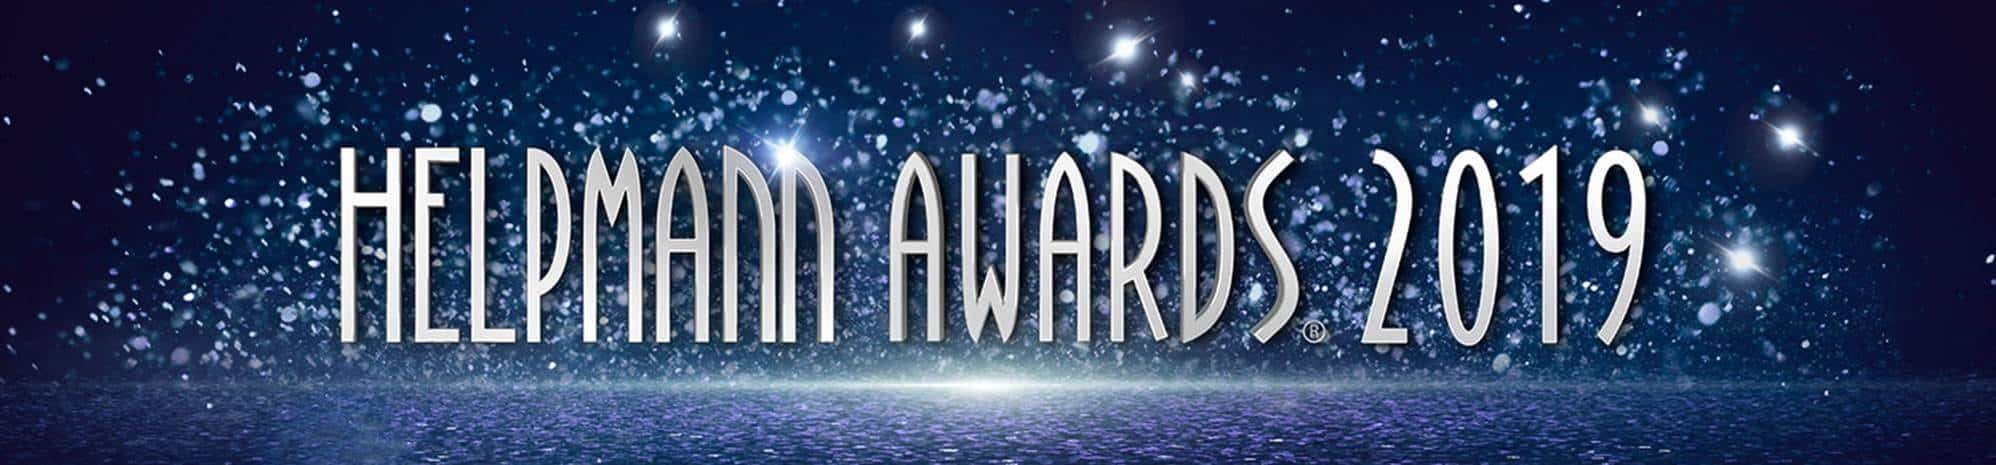 Scene News: The Countdown is on to the 19th Annual Helpmann Awards